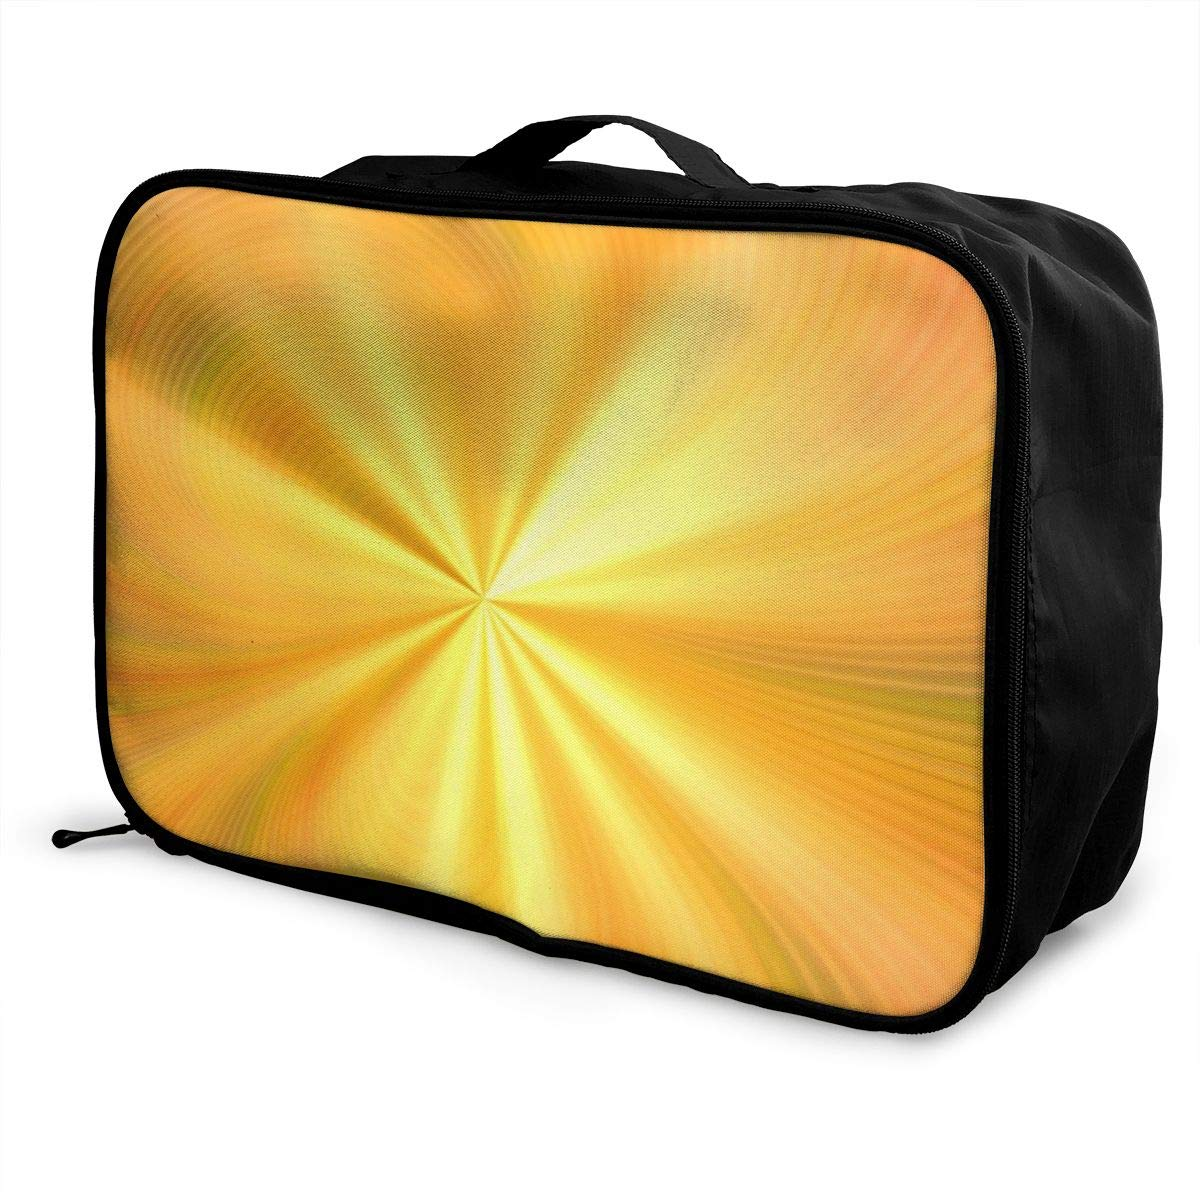 Blurred Bright Explosive Light Travel Lightweight Waterproof Foldable Storage Carry Luggage Large Capacity Portable Luggage Bag Duffel Bag